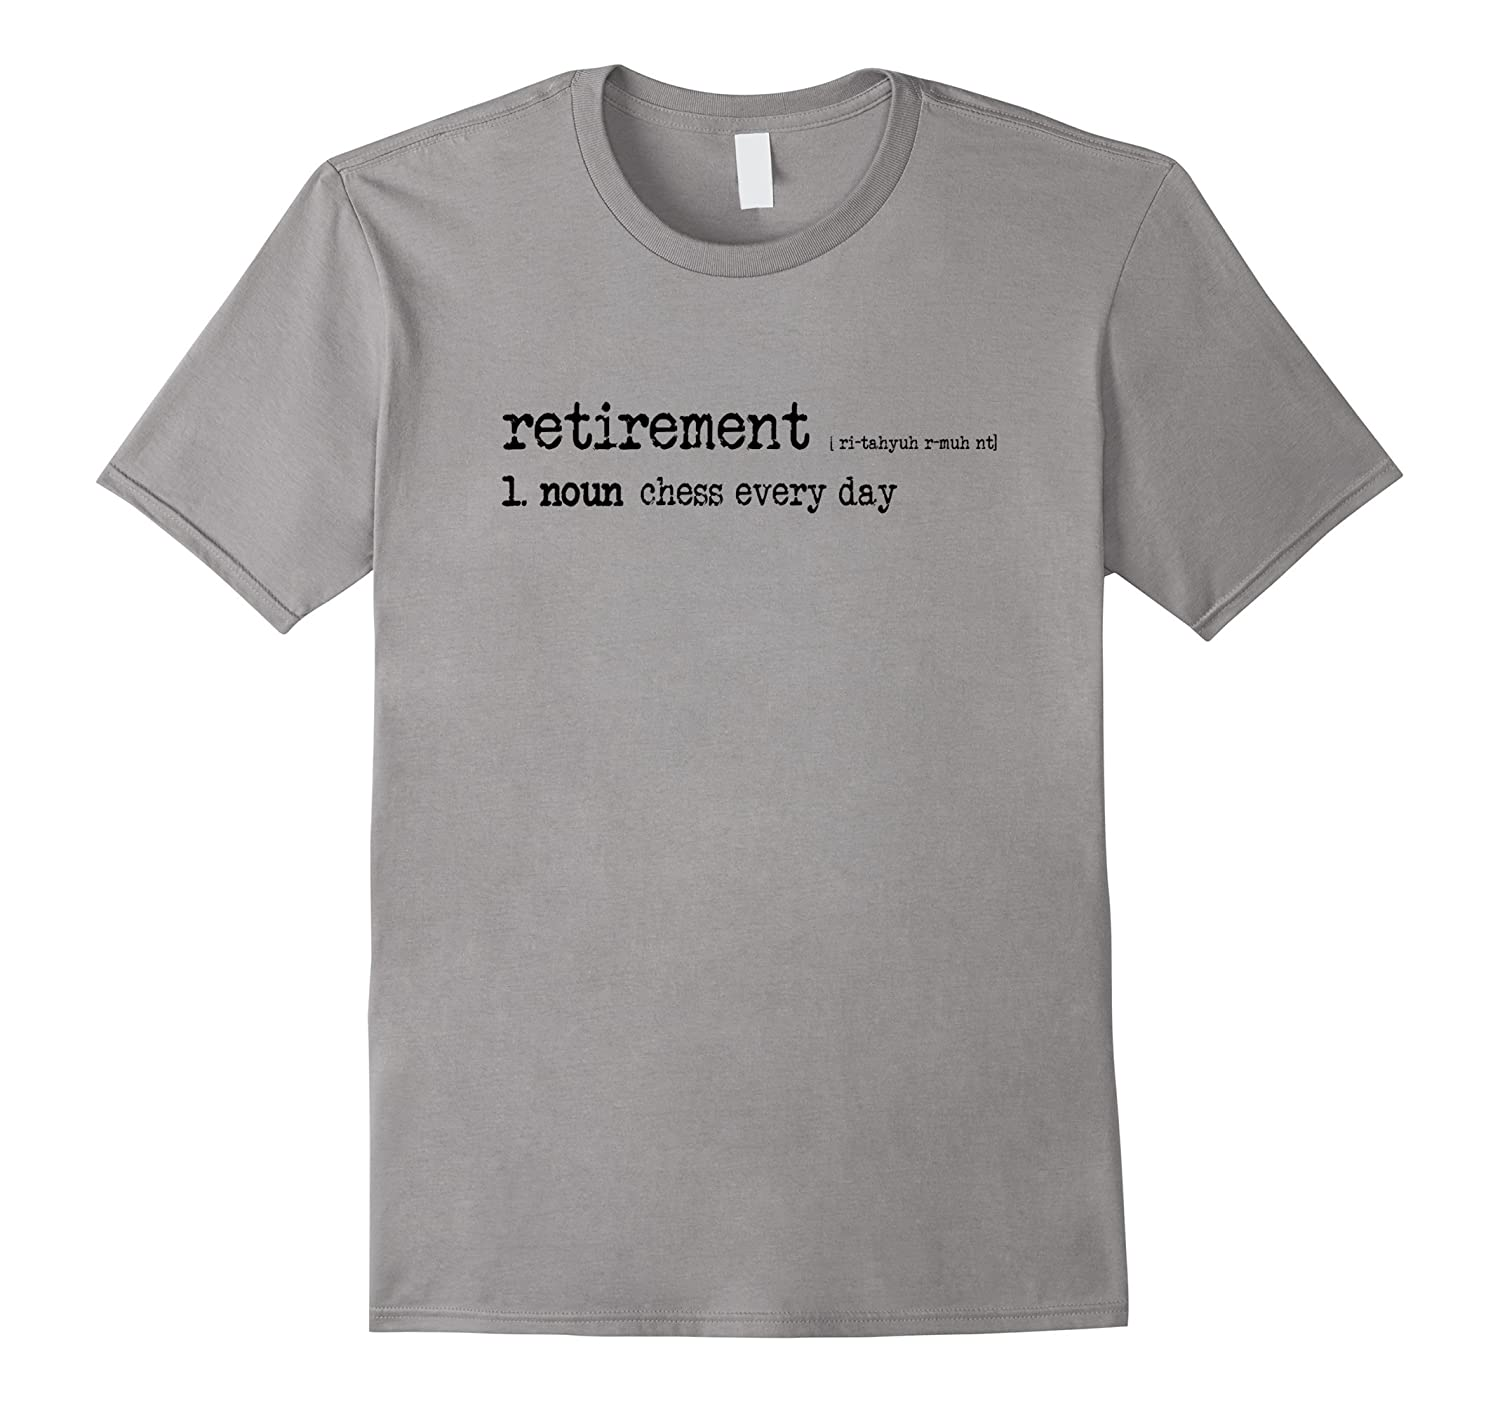 Chess Shirt Retirement Chess Every Day-TH